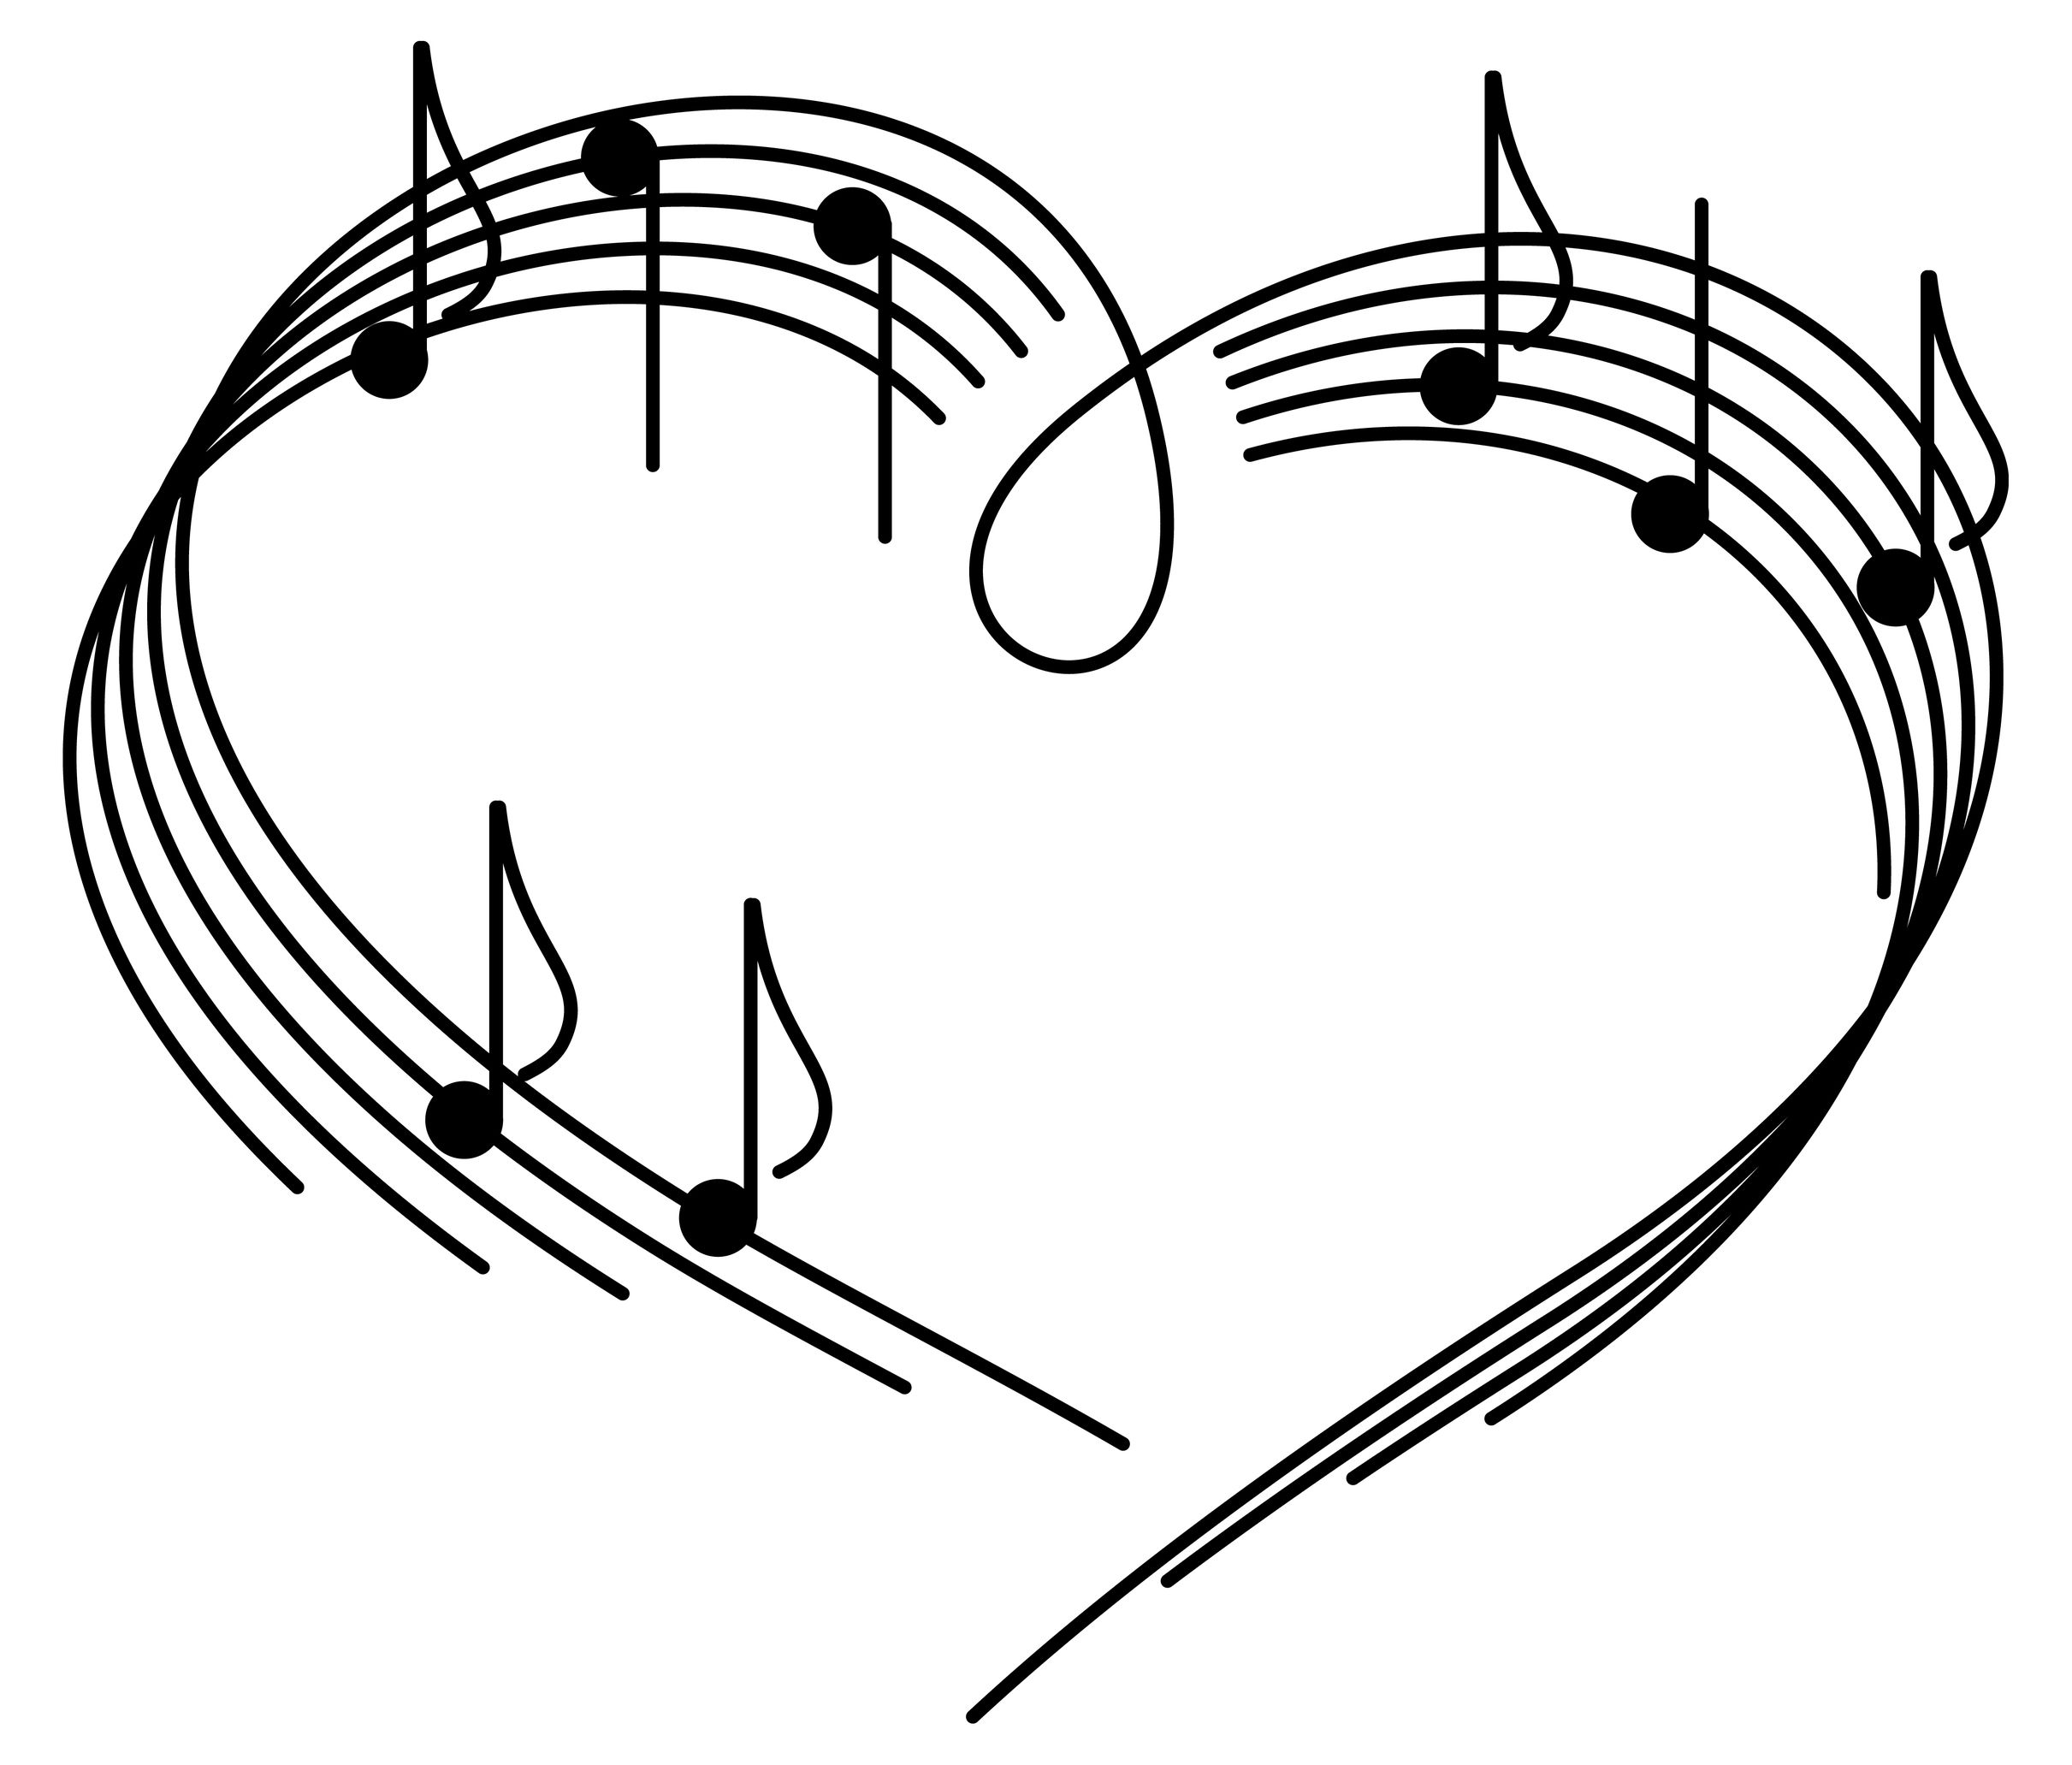 Heart Wallpaper Music Pictures Images Is Life My